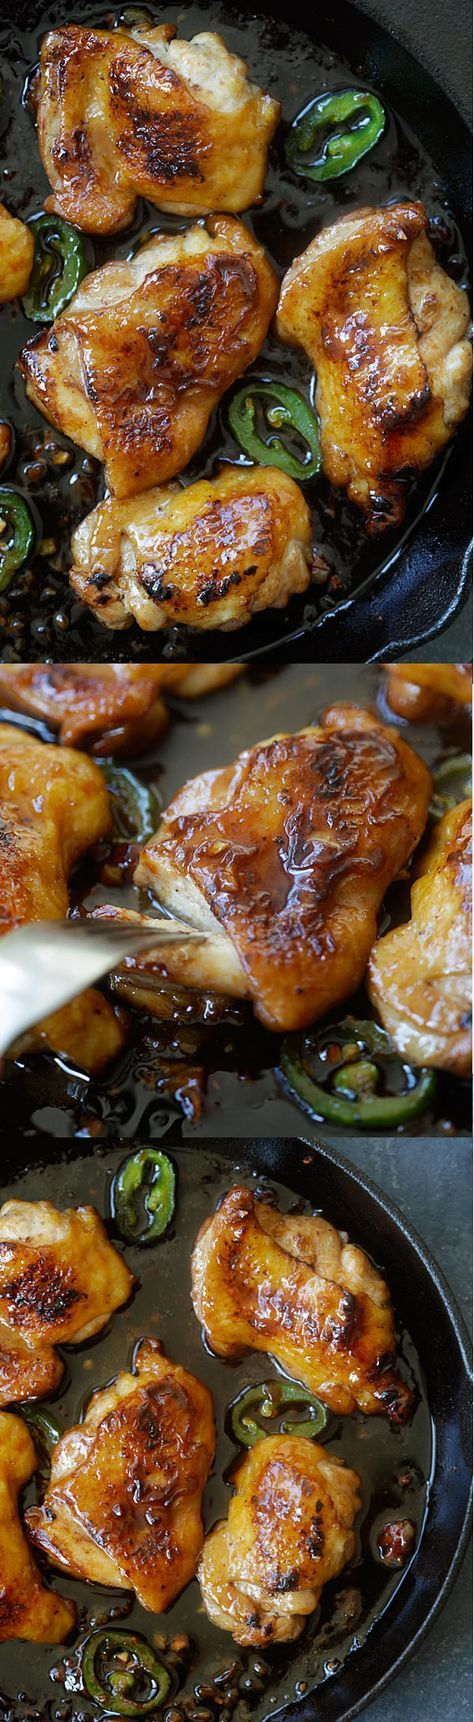 Vietnamese Caramel Chicken – the easiest and most delicious Asian chicken dish ever with sticky, sweet and savory chicken. Dinner is done in 20 mins | rasamalaysia.com